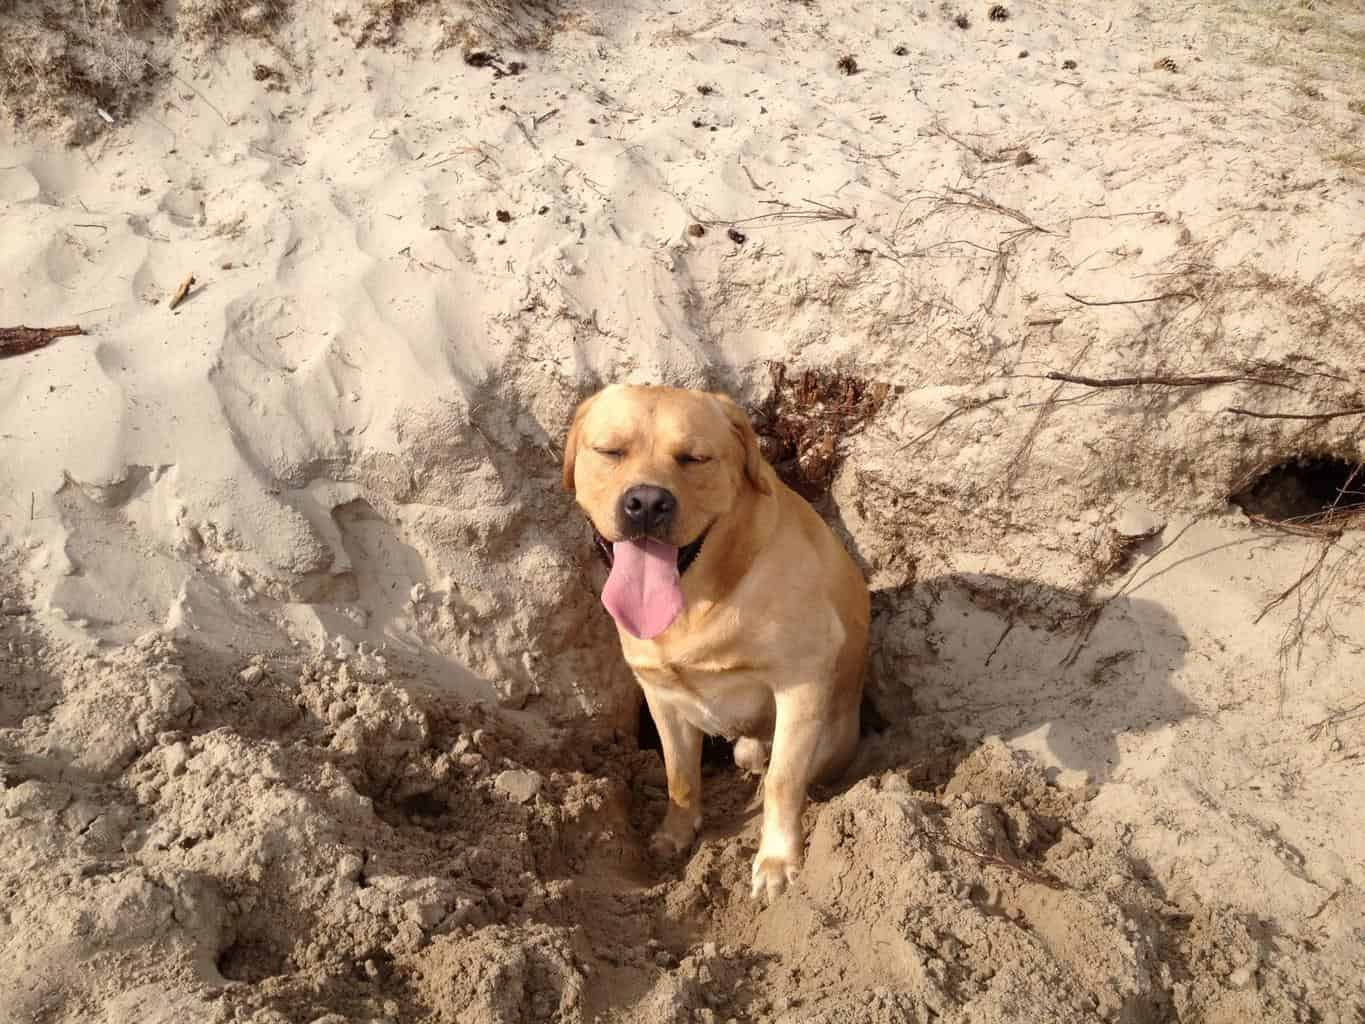 Why is my dog digging holes all of a sudden?